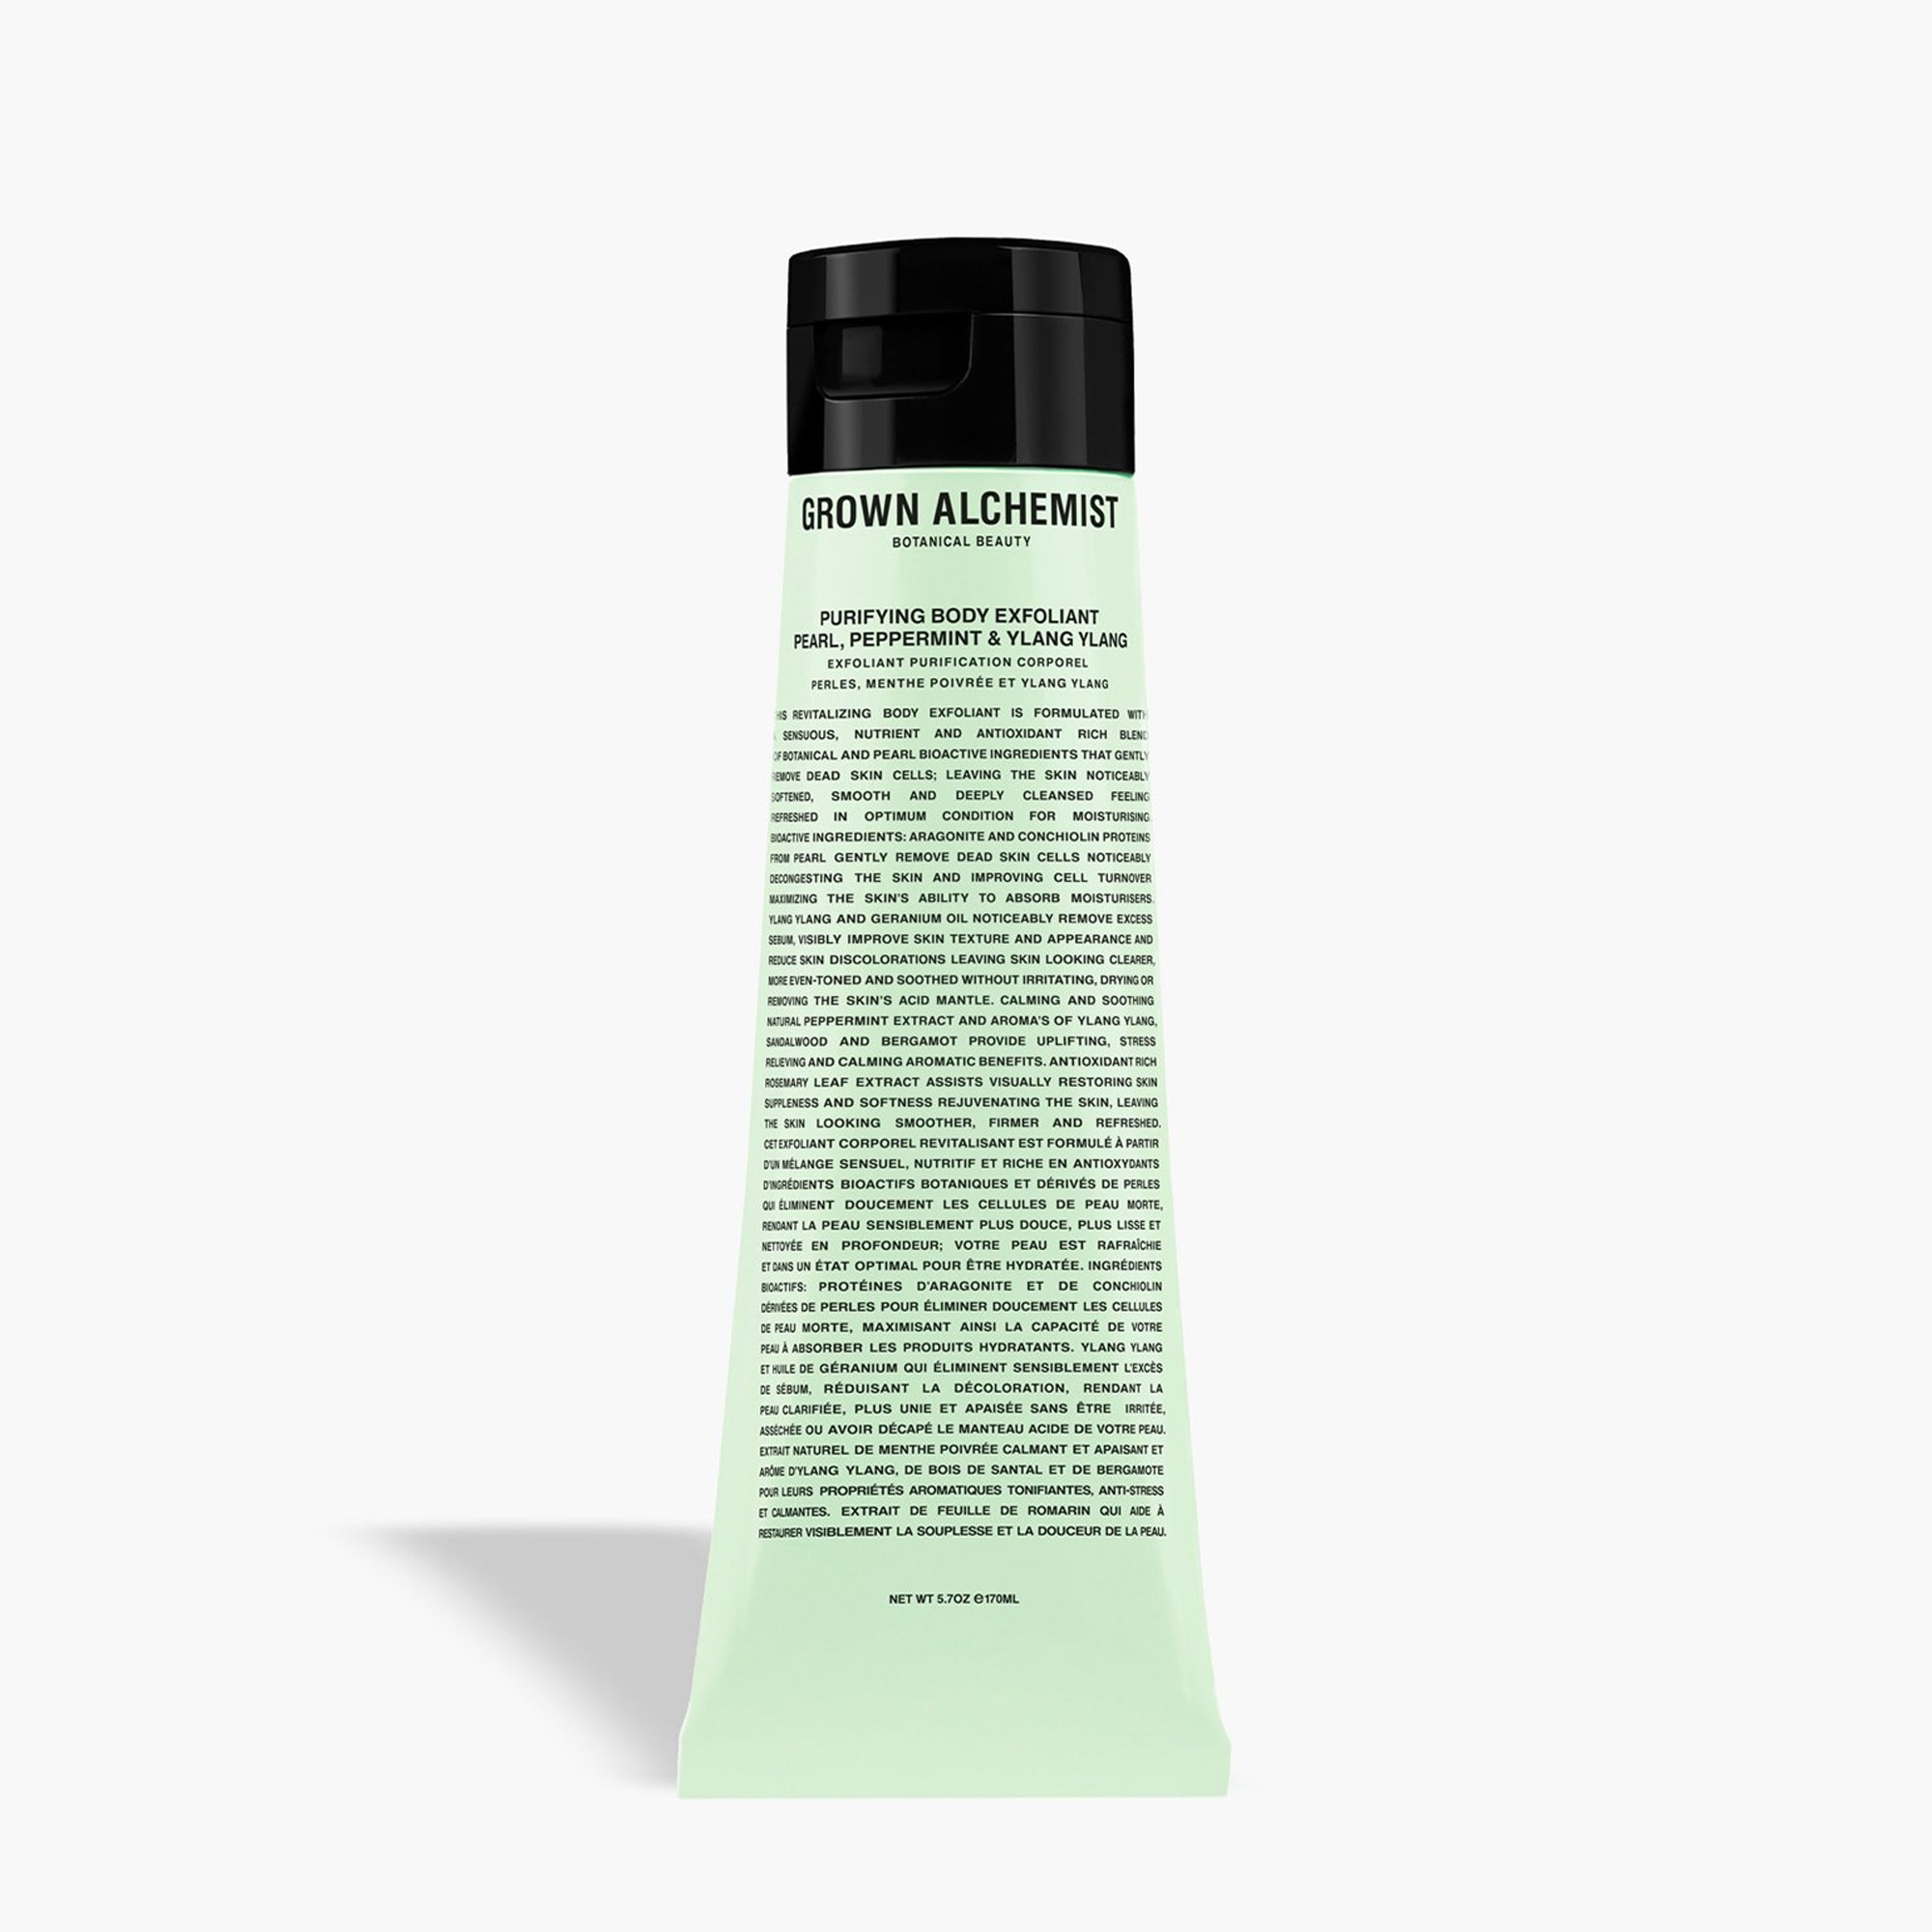 mens GROWN ALCHEMIST® purifying body exfoliant - pearl, pepperment and ylang-ylang